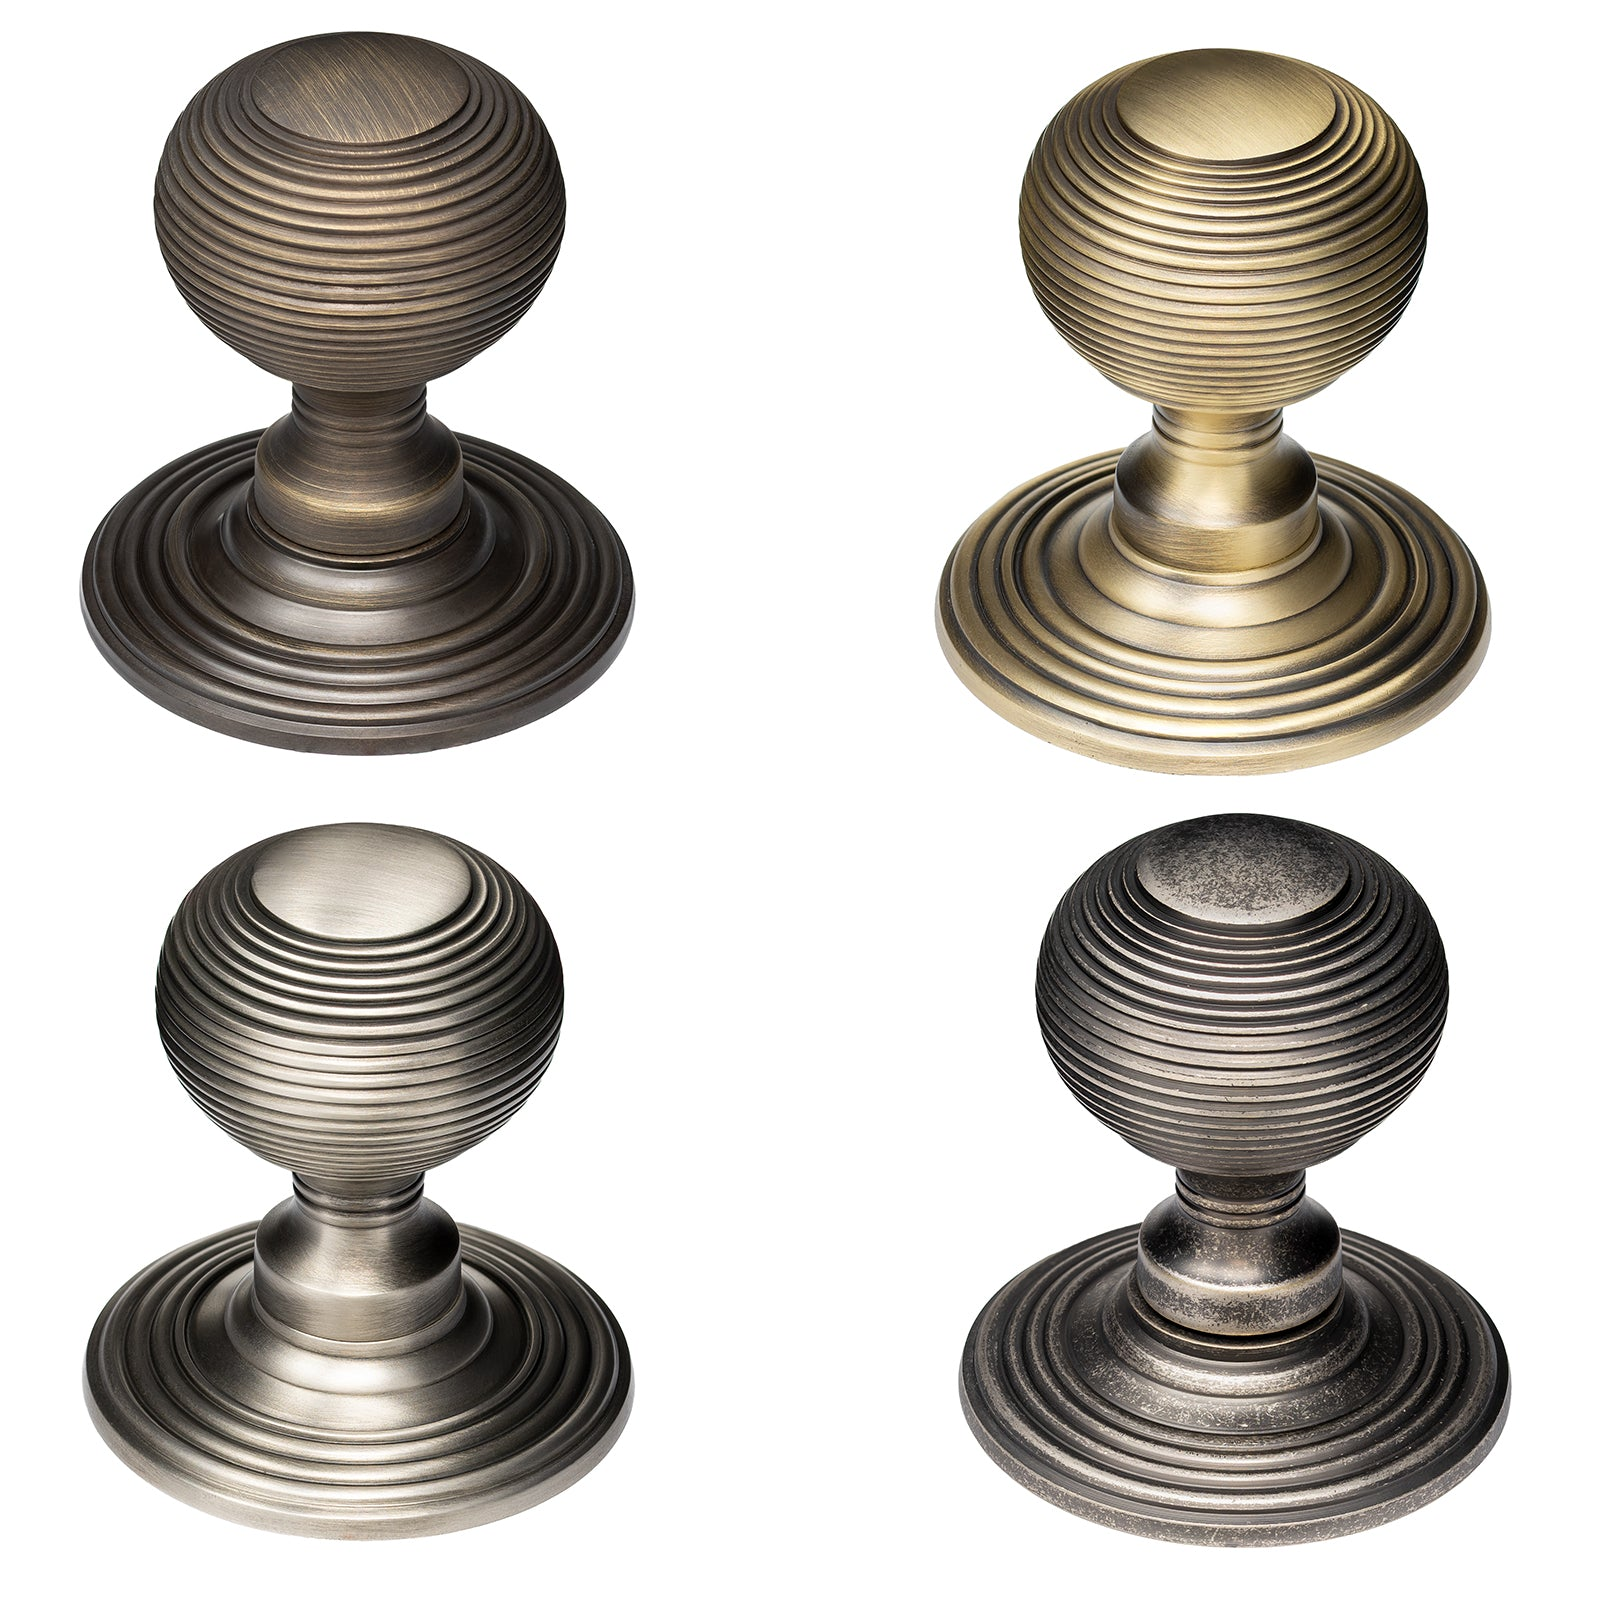 Solid Brass Reeded Door Knobs Old English Collection